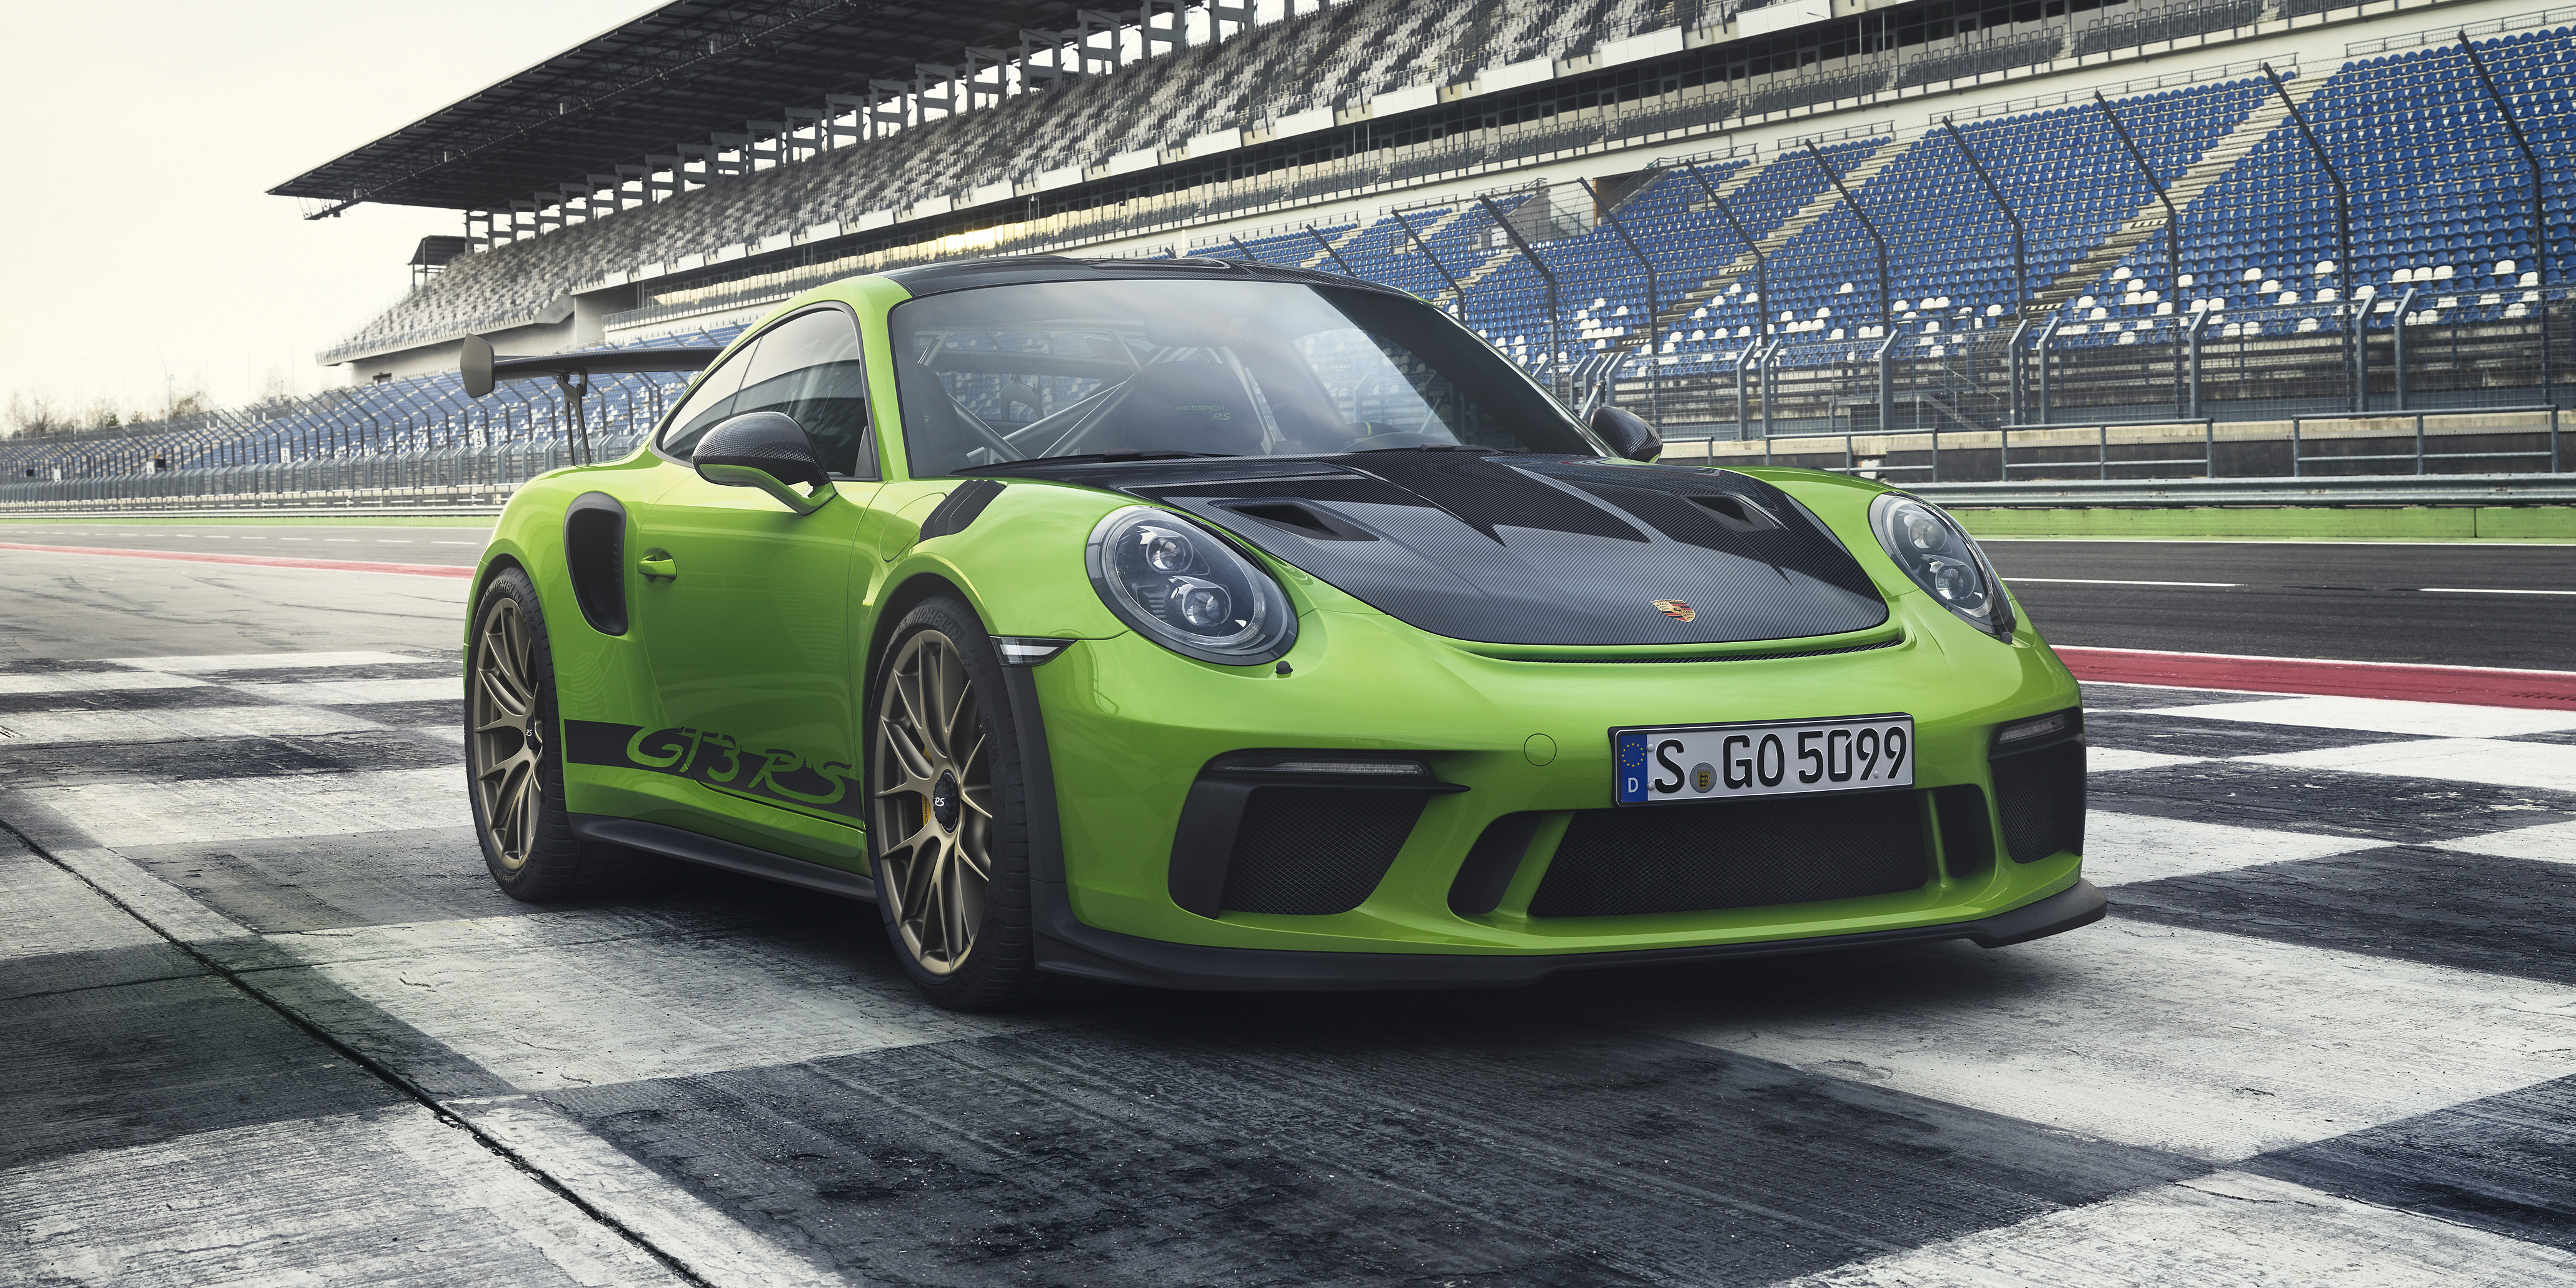 2018 Porsche 911 Gt3 Rs Unveiled Priced From 416 500 Caradvice